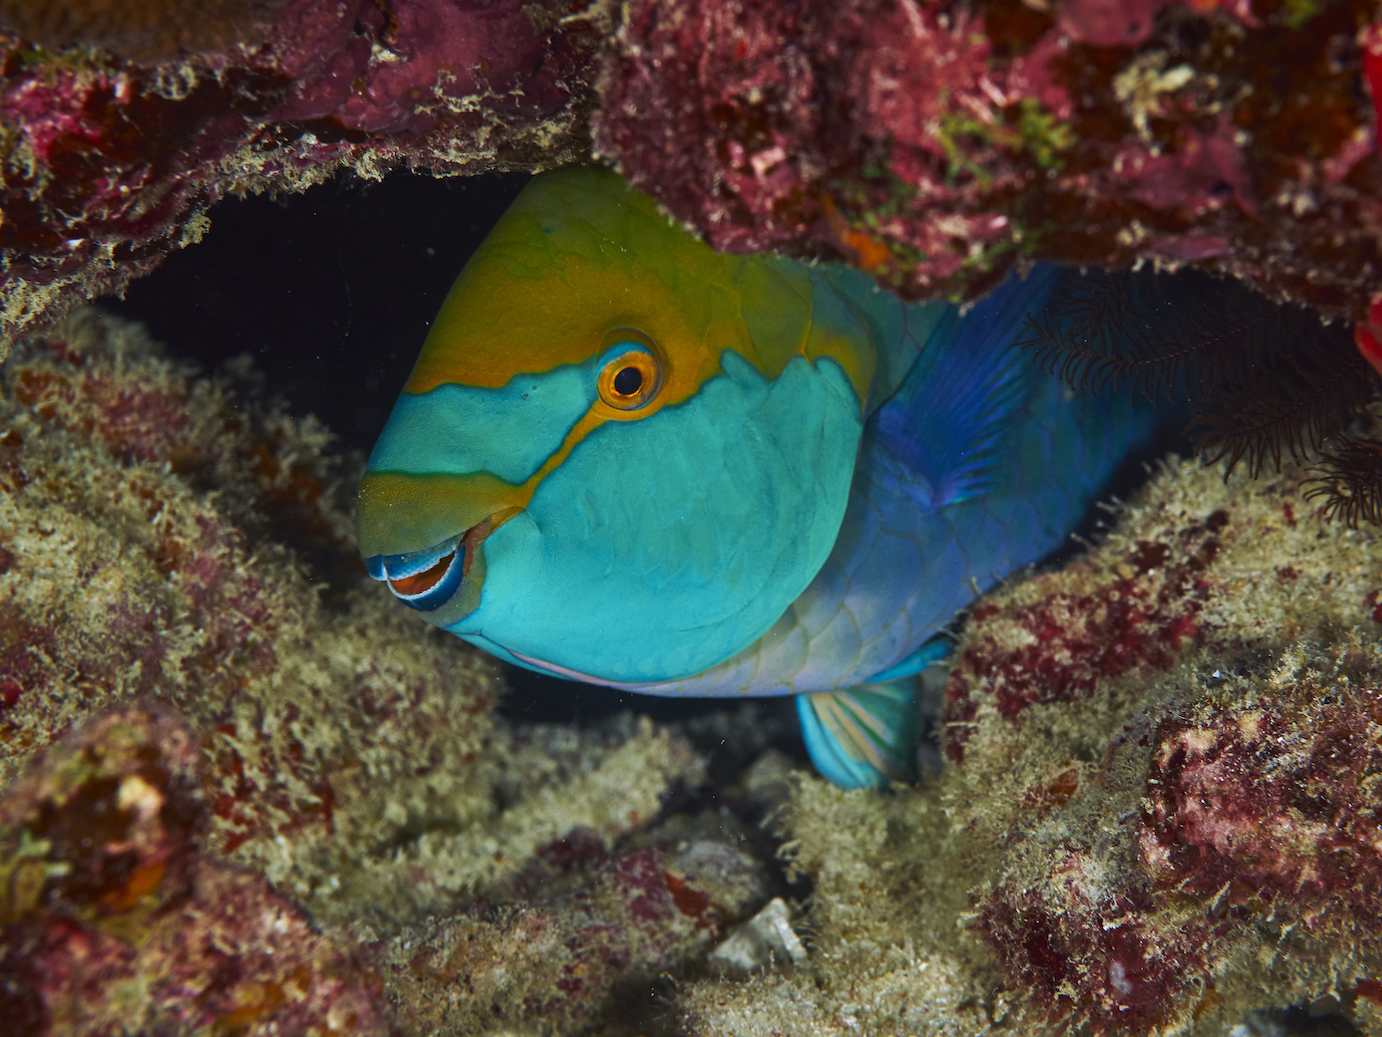 Scientists have now identified a woven microstructure that enables parrotfish to chomp on coral tirelessly.